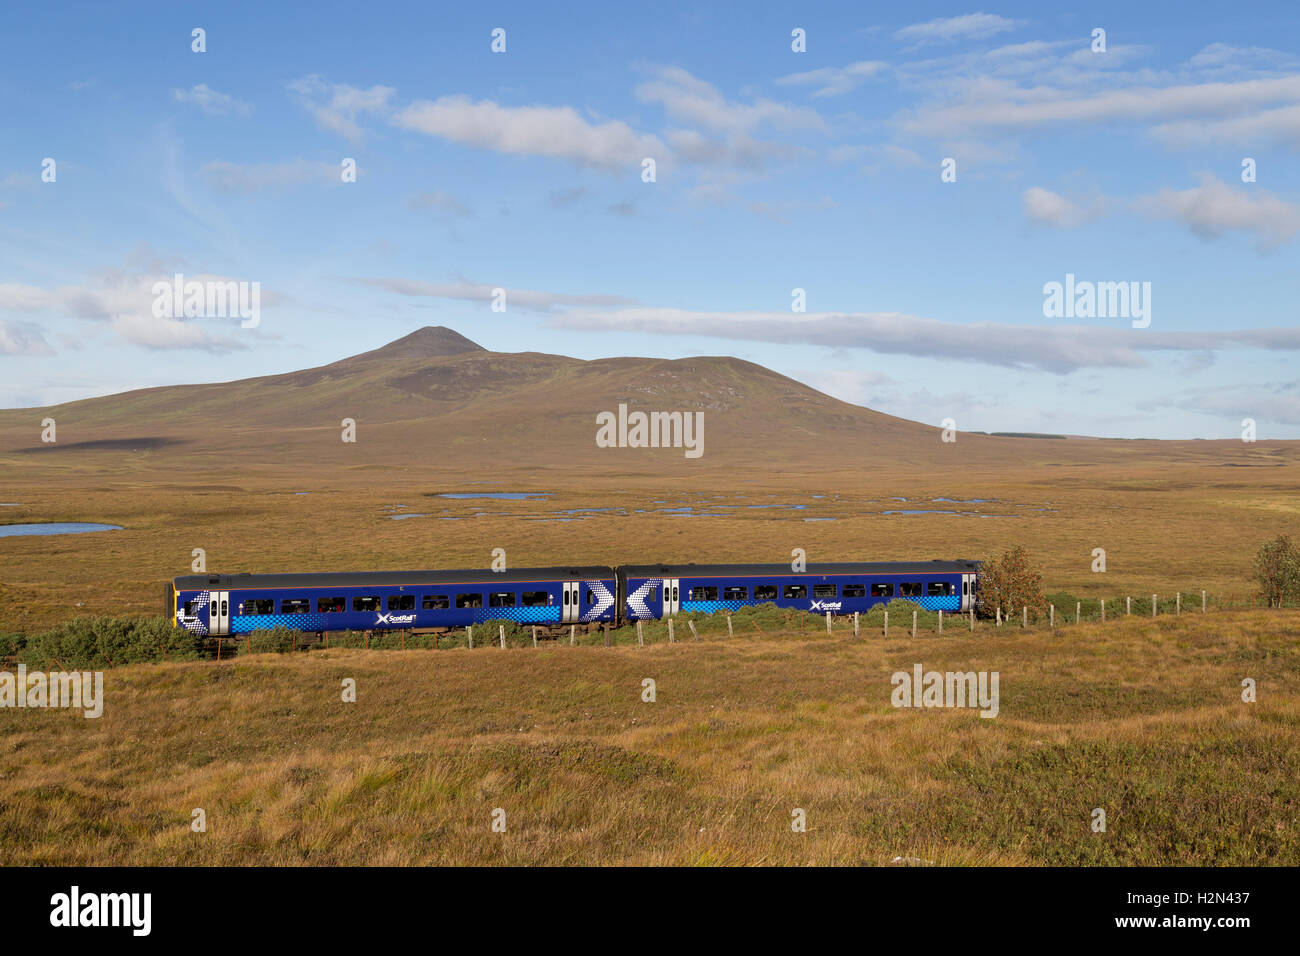 Scotrail train in Sutherland, Highland Scotland - Stock Image